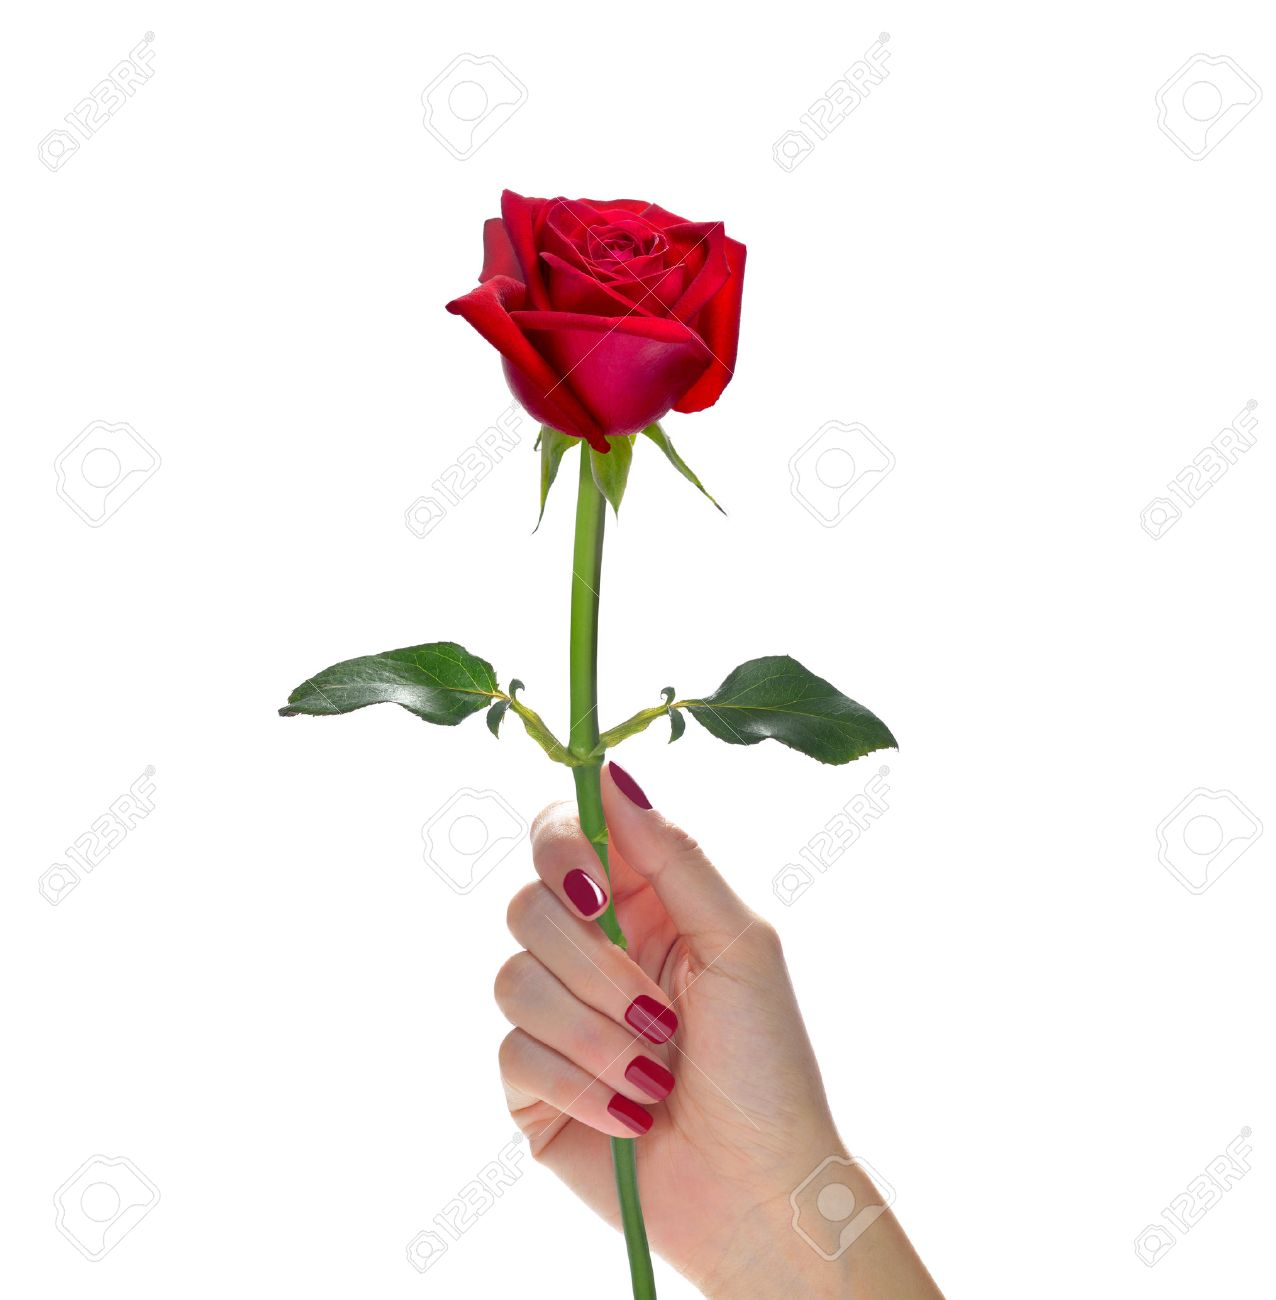 Hand Holding Beautiful Red Rose Flower Isolated On White Stock Photo